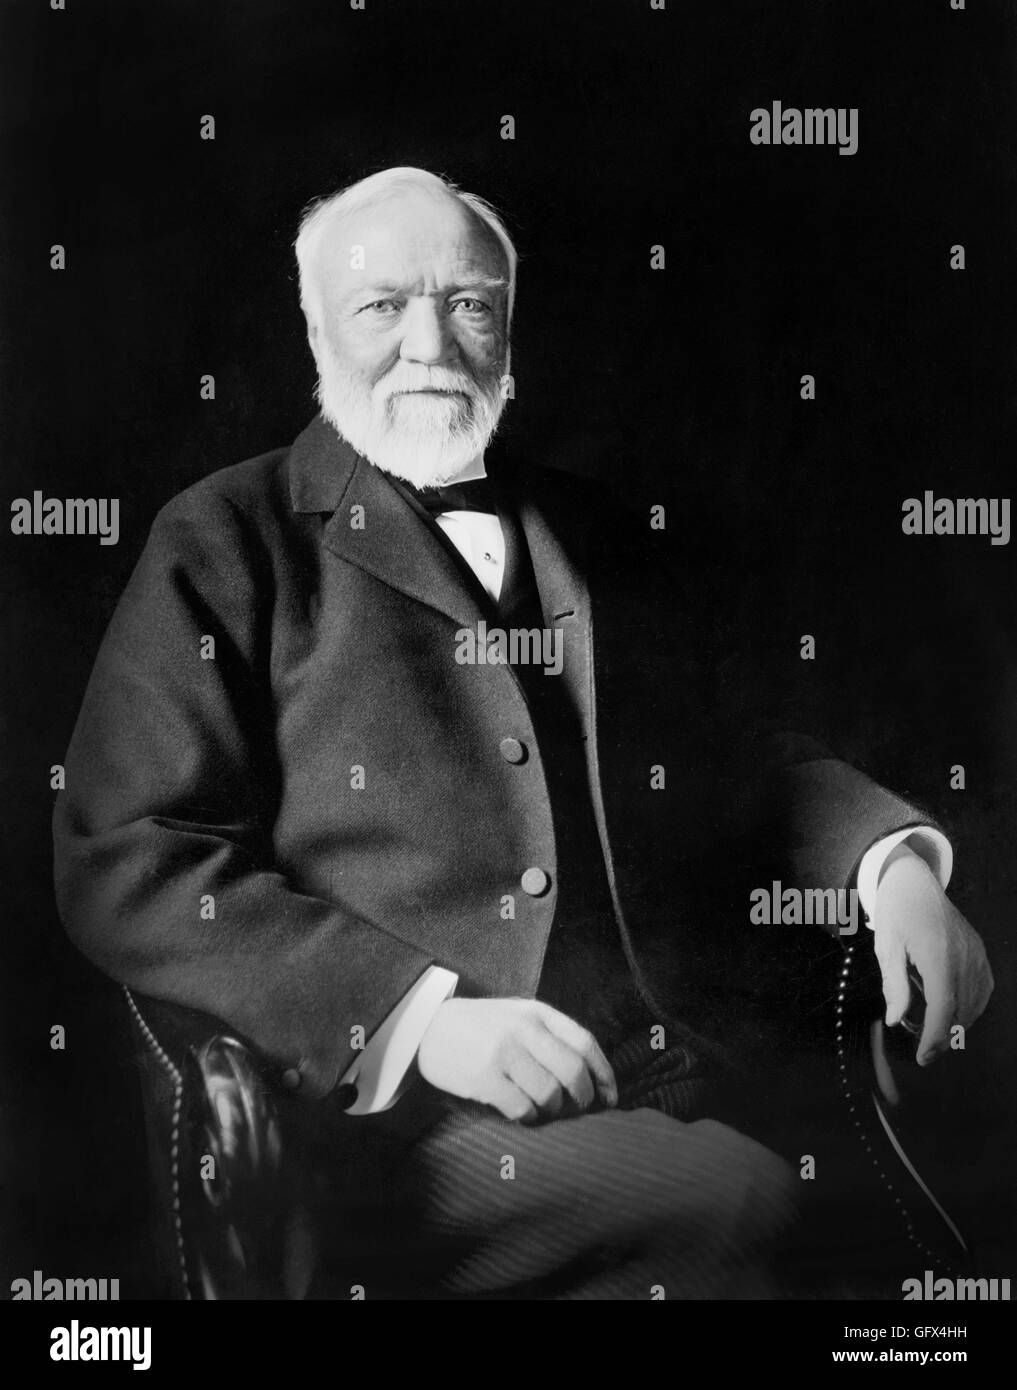 Andrew Carnegie, portrait of the Scottish-American industrialist by Theodore Marceau, c.1913. - Stock Image